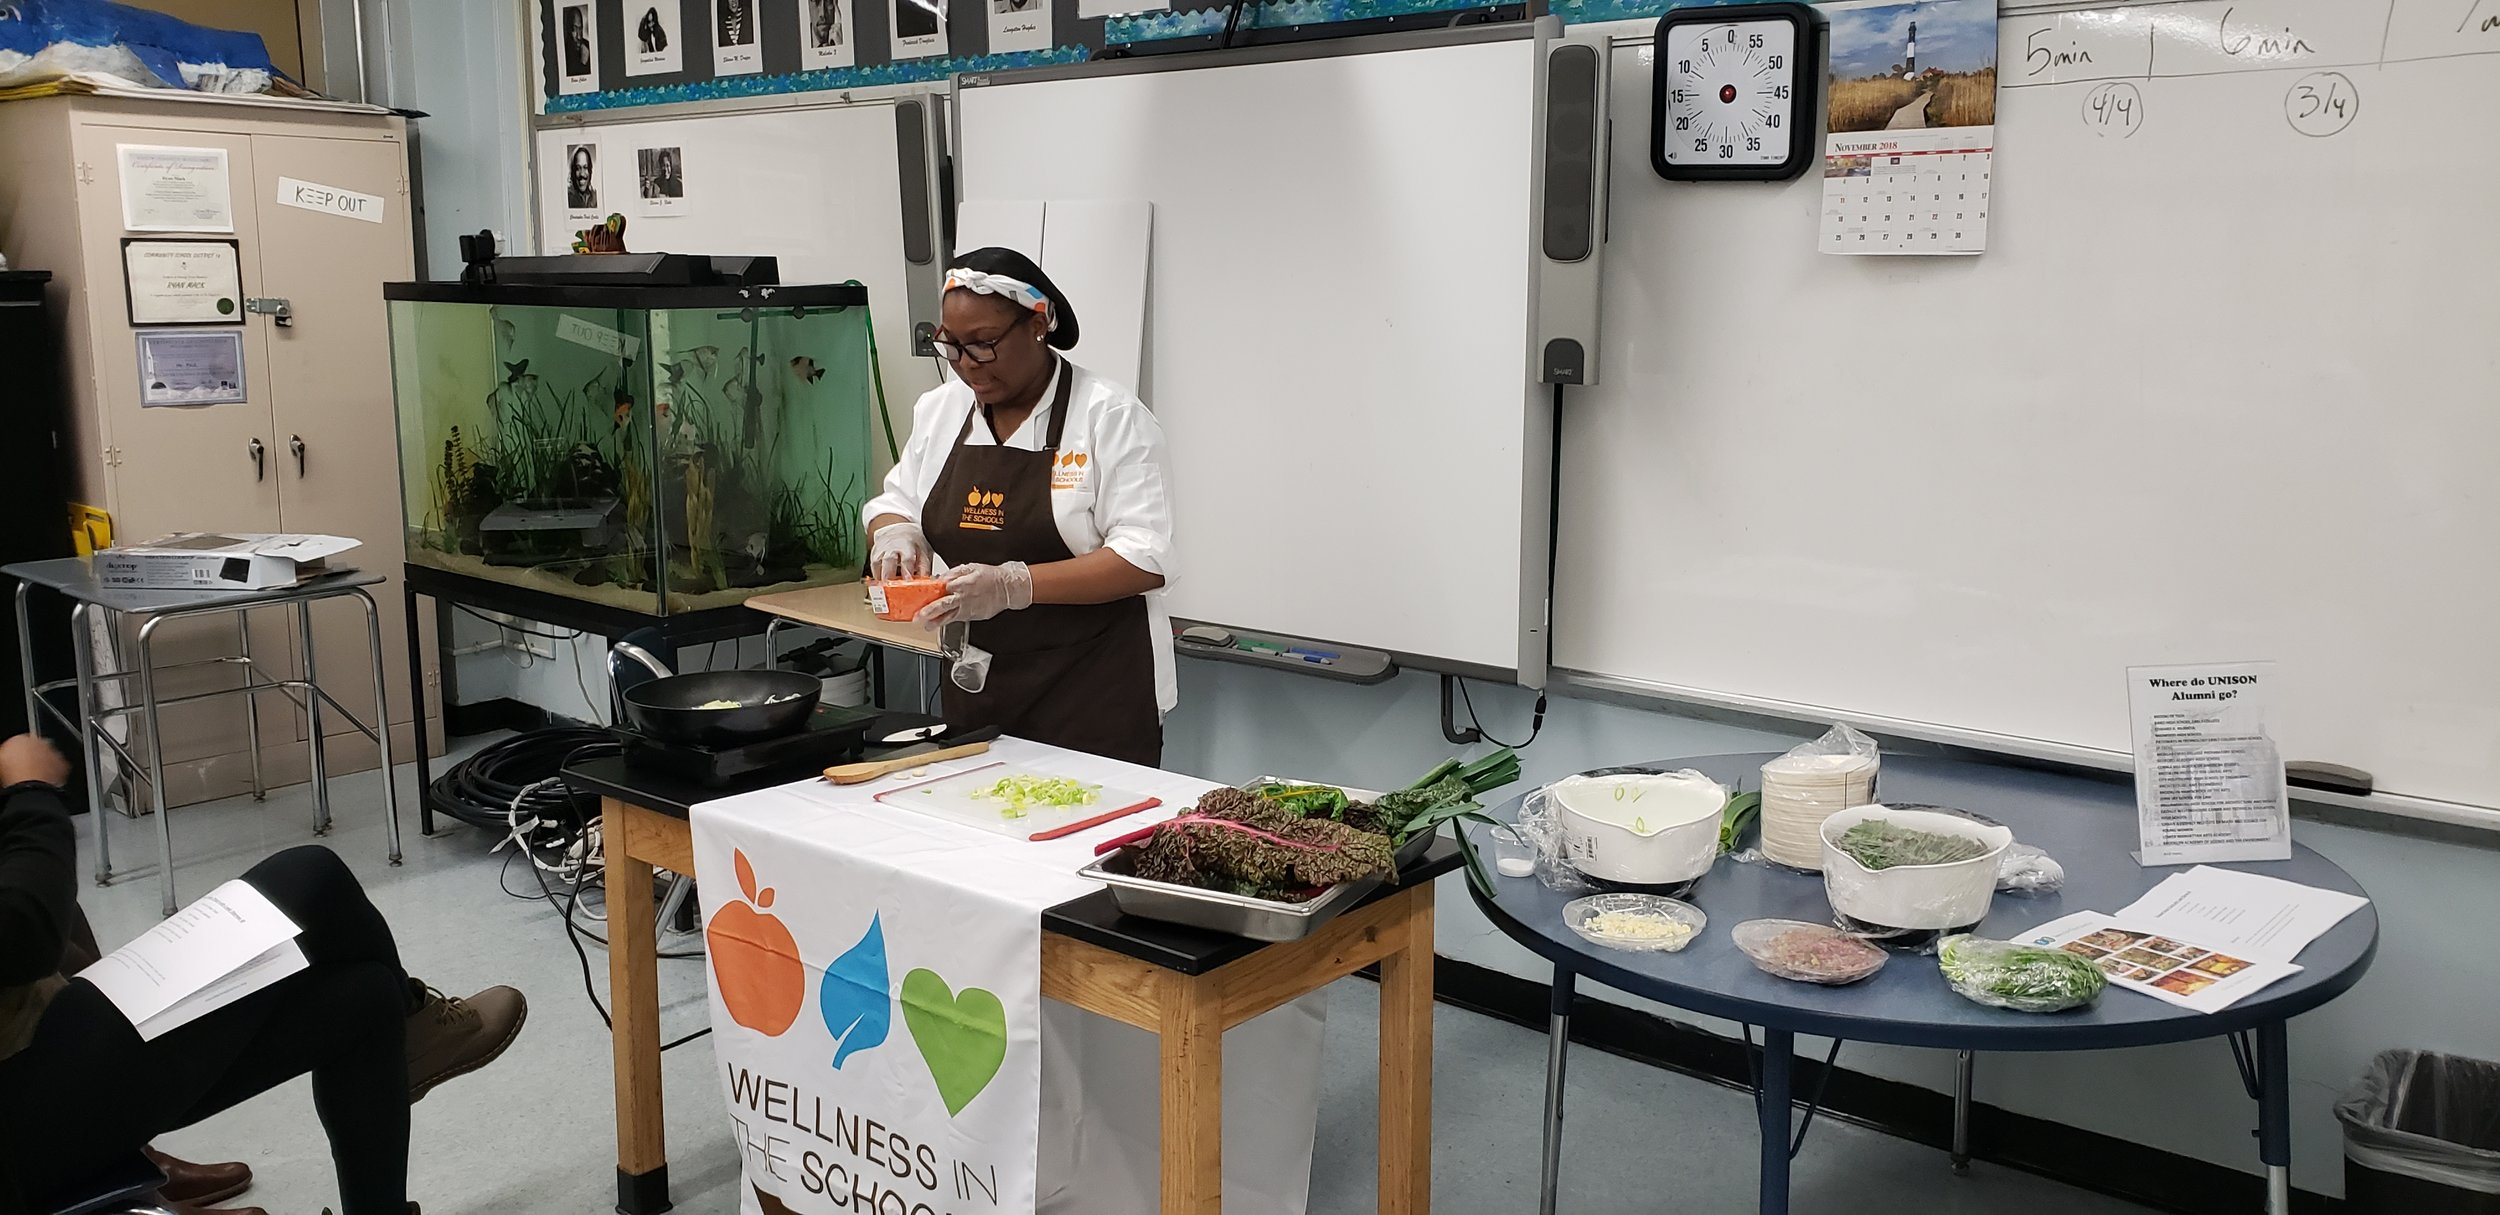 11.14.18 - We had a great PTA meeting with two of our amazing partnerships coming together to host a cooking demo! Thank you Teens for Food Justice for providing the amazing veggies from our hydroponic farm, and Chef Aliyah from Wellness In The Schools for showing up how to cook them!